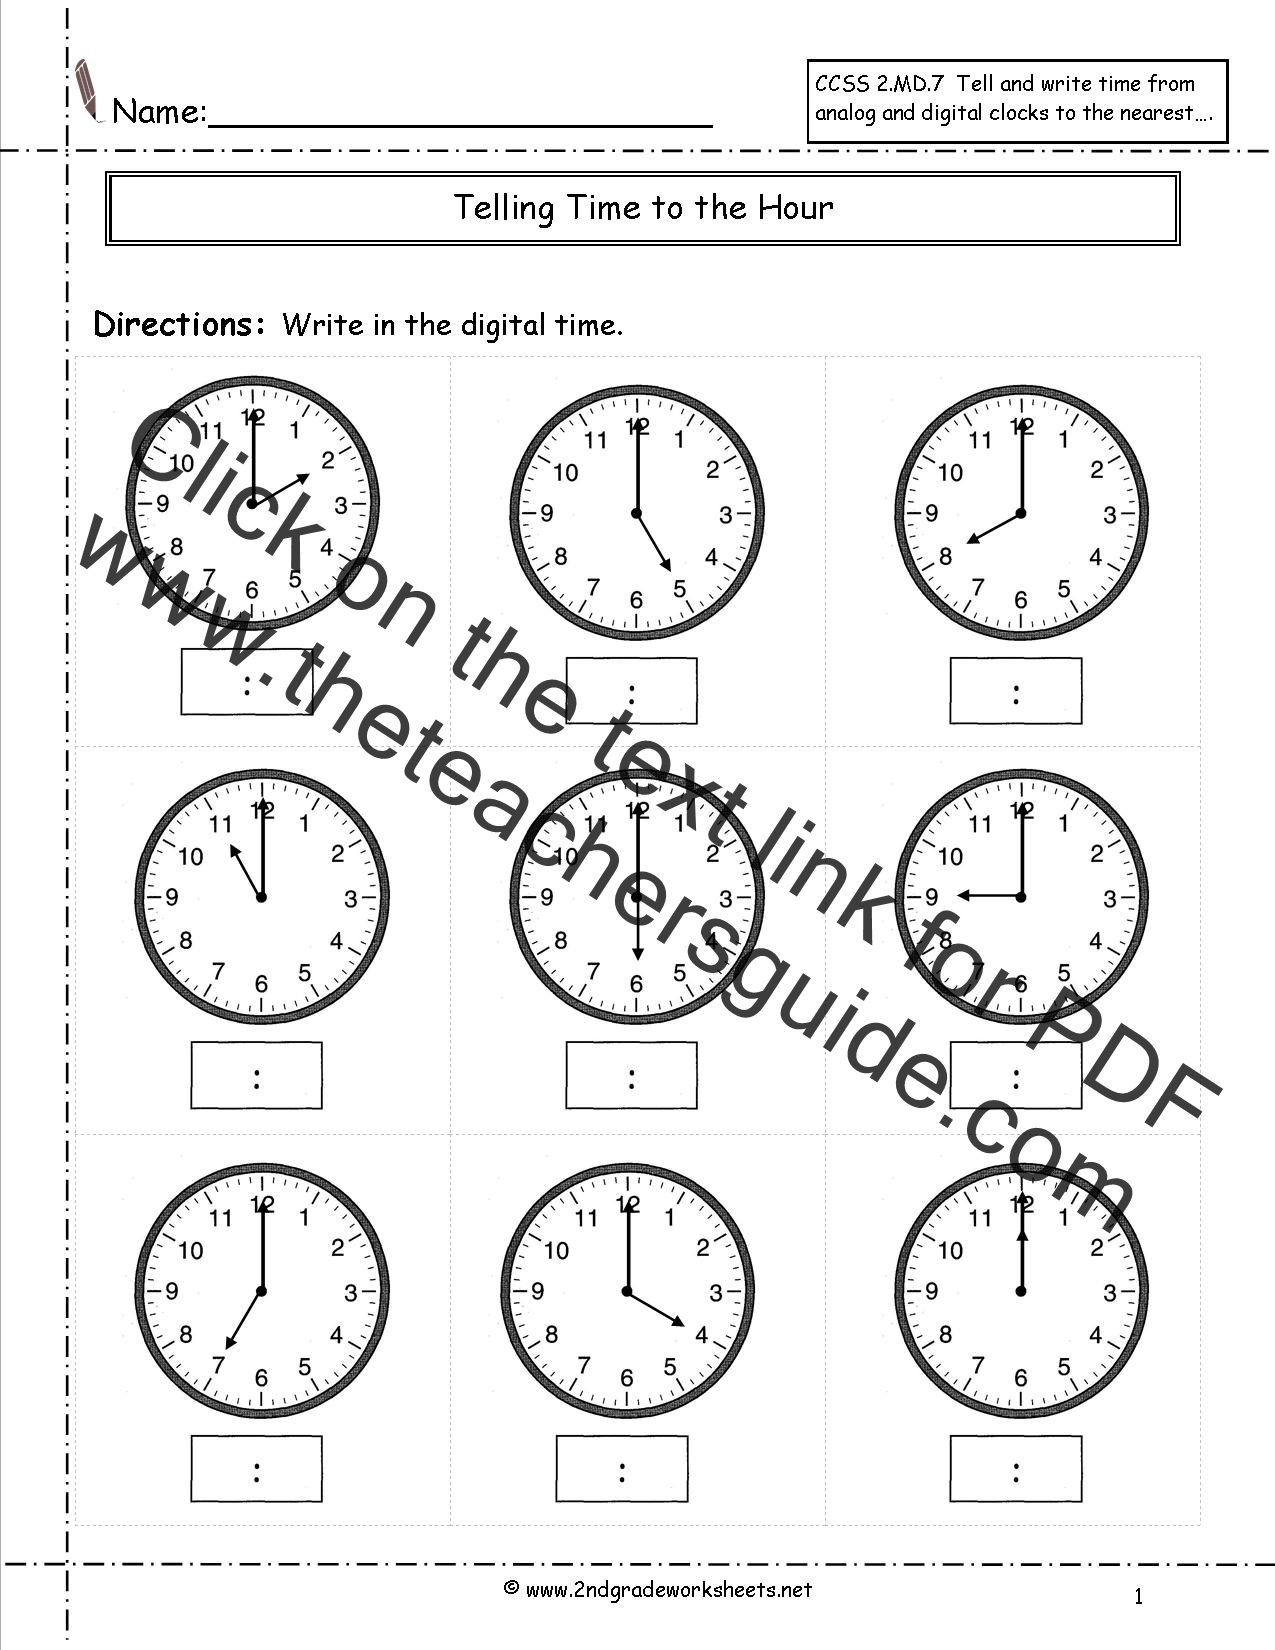 worksheet Time Worksheet telling and writing time worksheets to hour worksheet